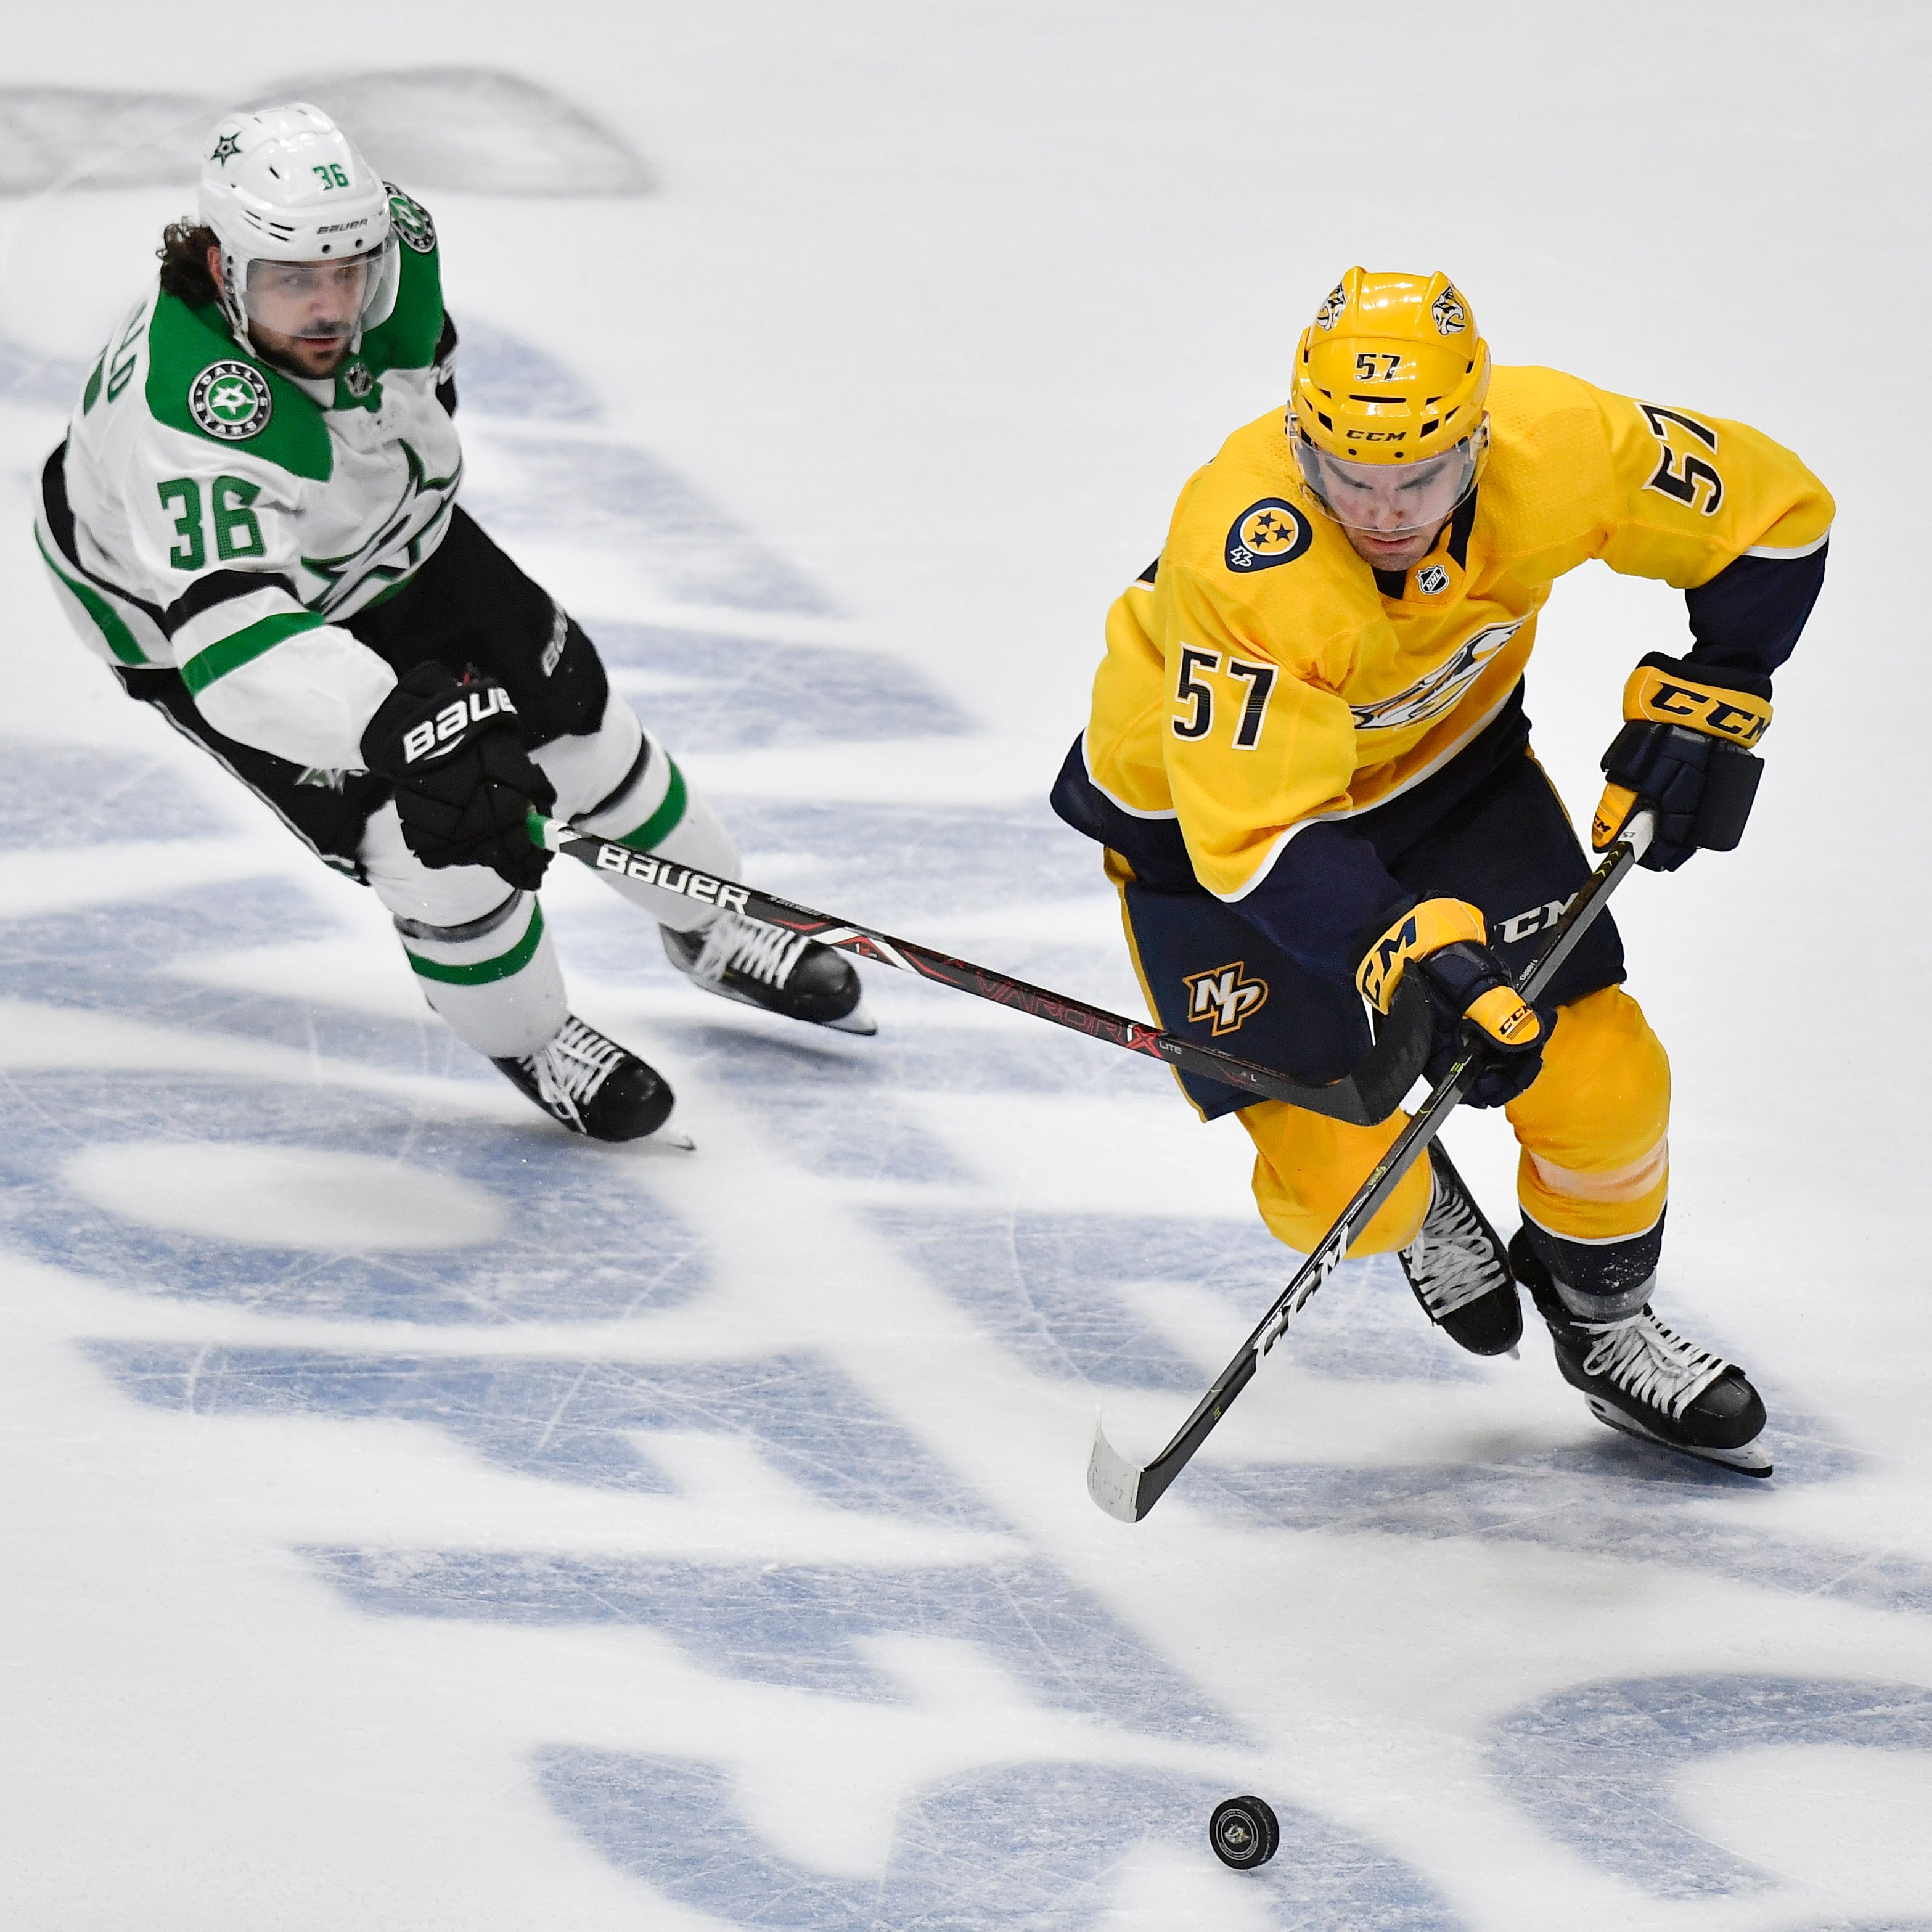 Predators 2, Stars 1 in OT: 3 things to know as Nashville evens series on Craig Smith's goal